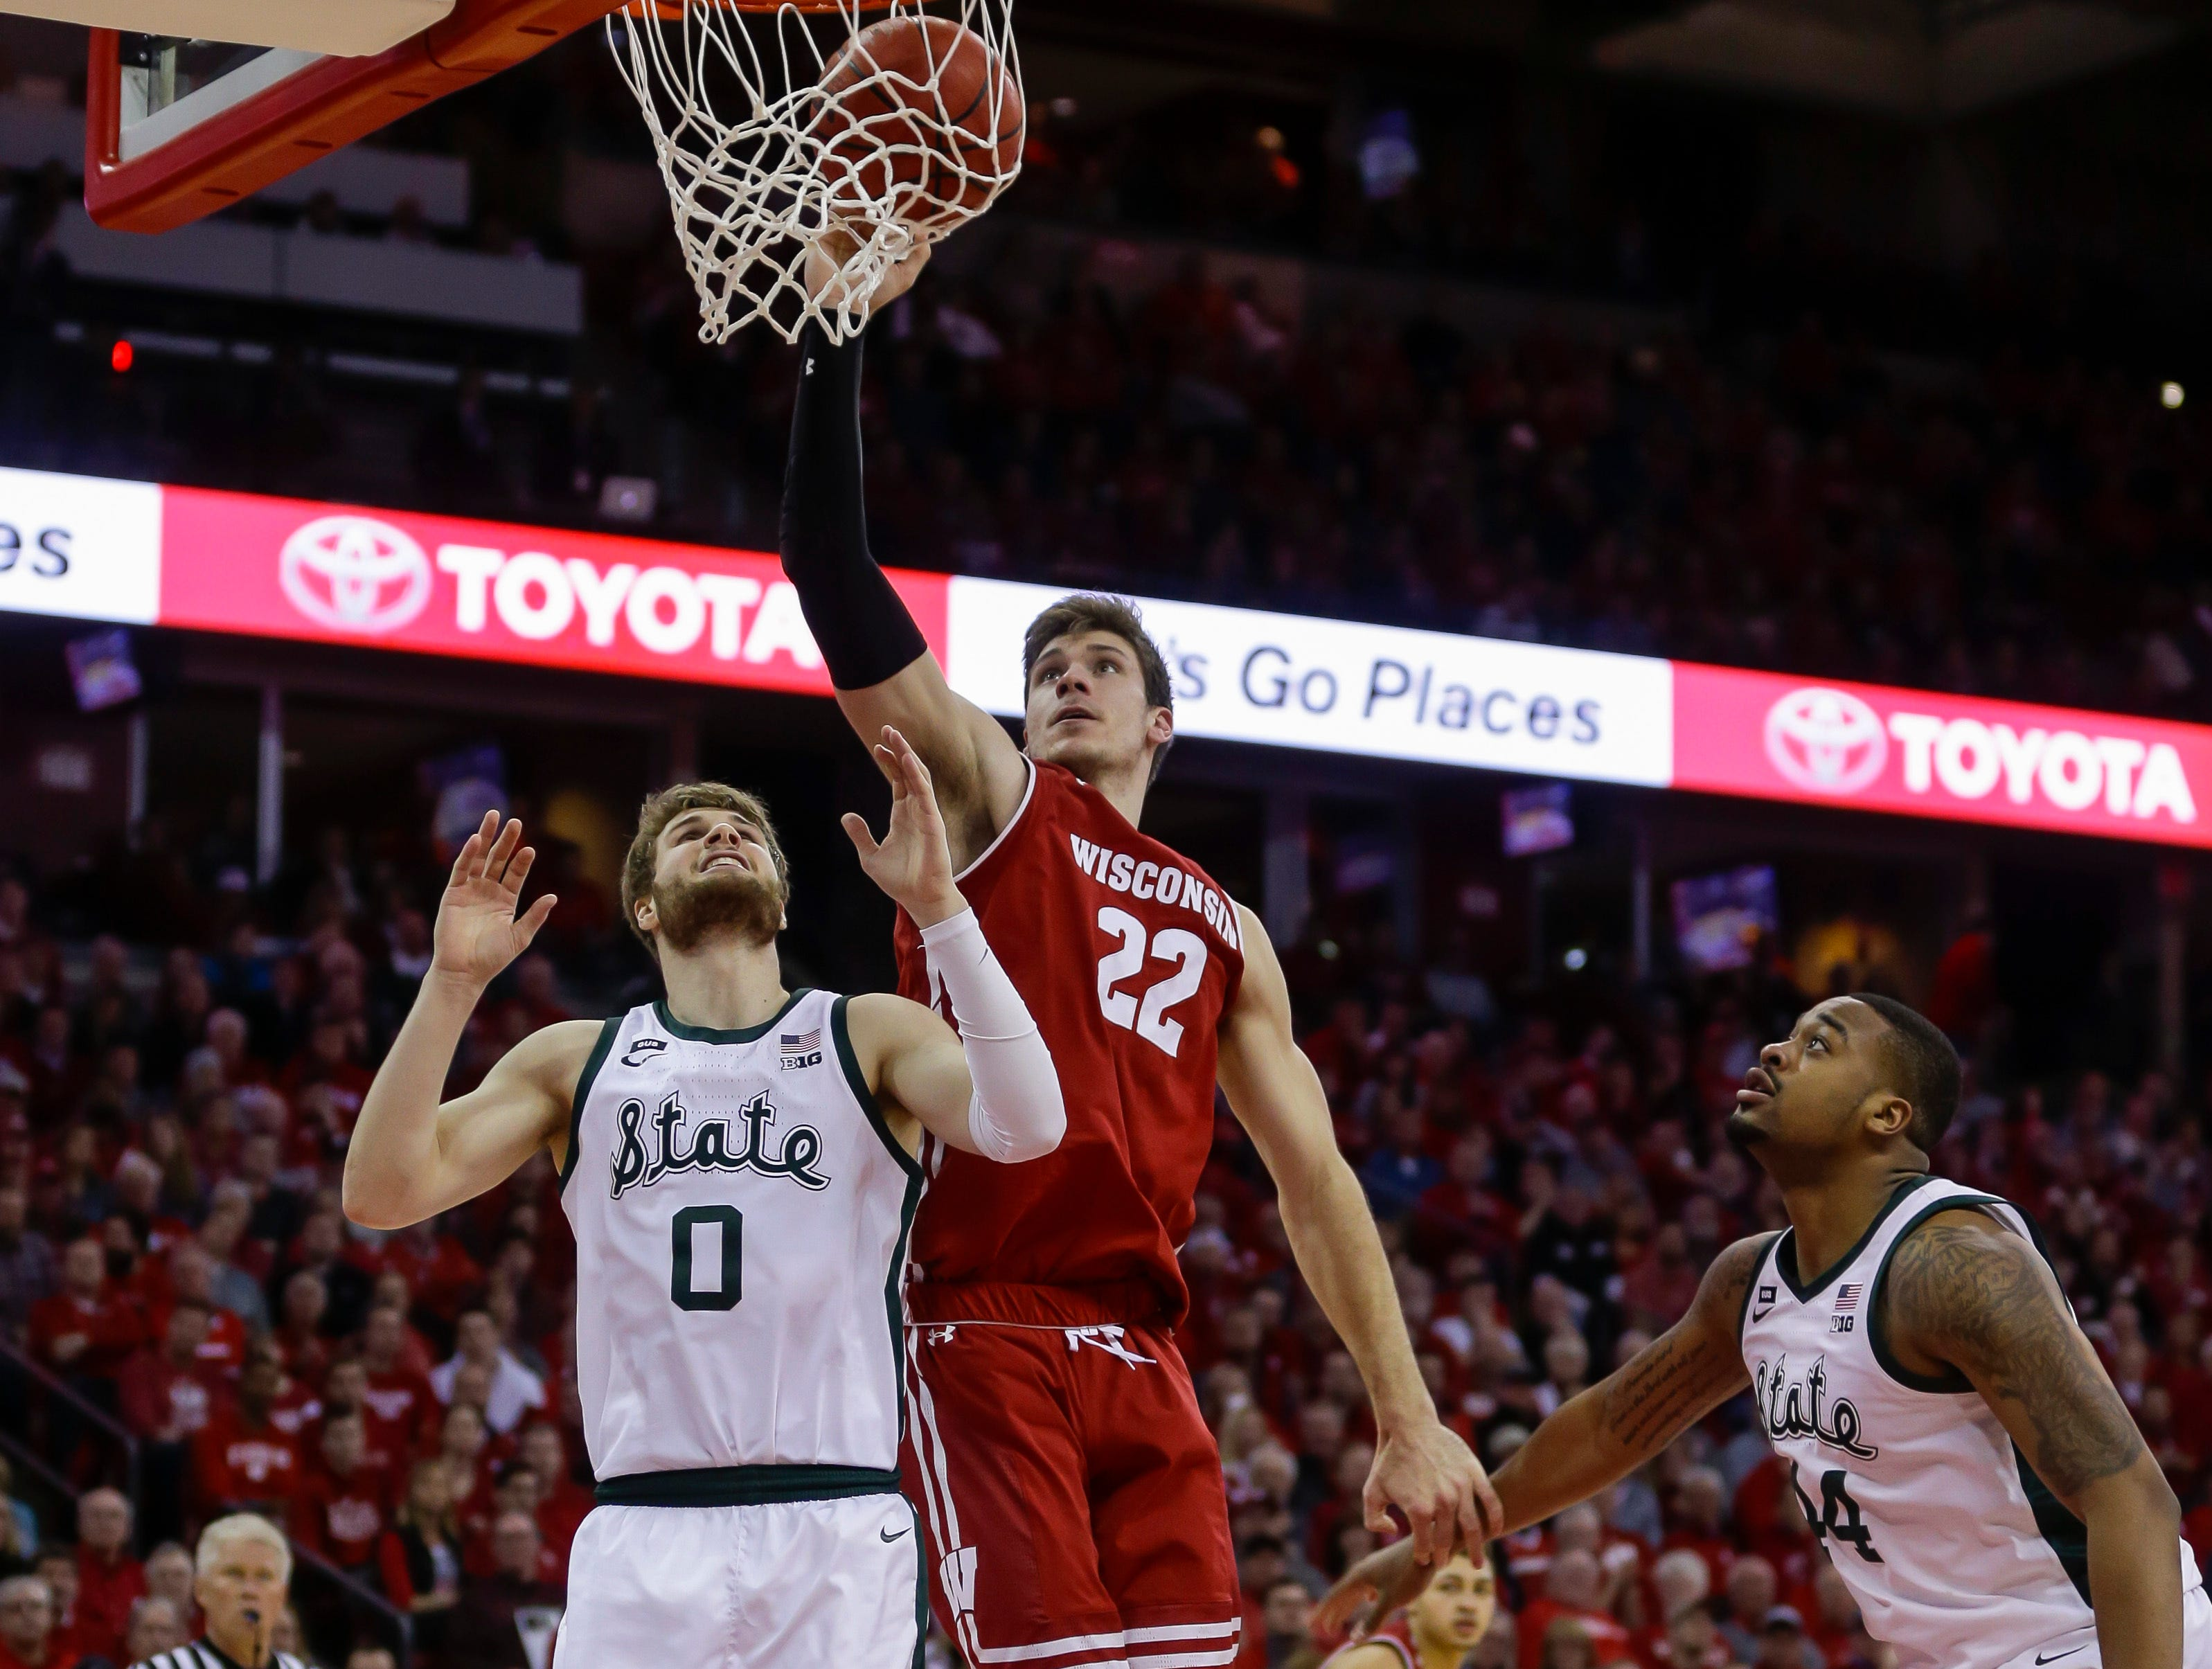 Wisconsin's Ethan Happ (22) shoots against Michigan States's Kyle Ahrens (0) and Nick Ward, right, during the second half of an NCAA college basketball game Tuesday, Feb. 12, 2019, in Madison, Wis. Michigan State won 67-59.